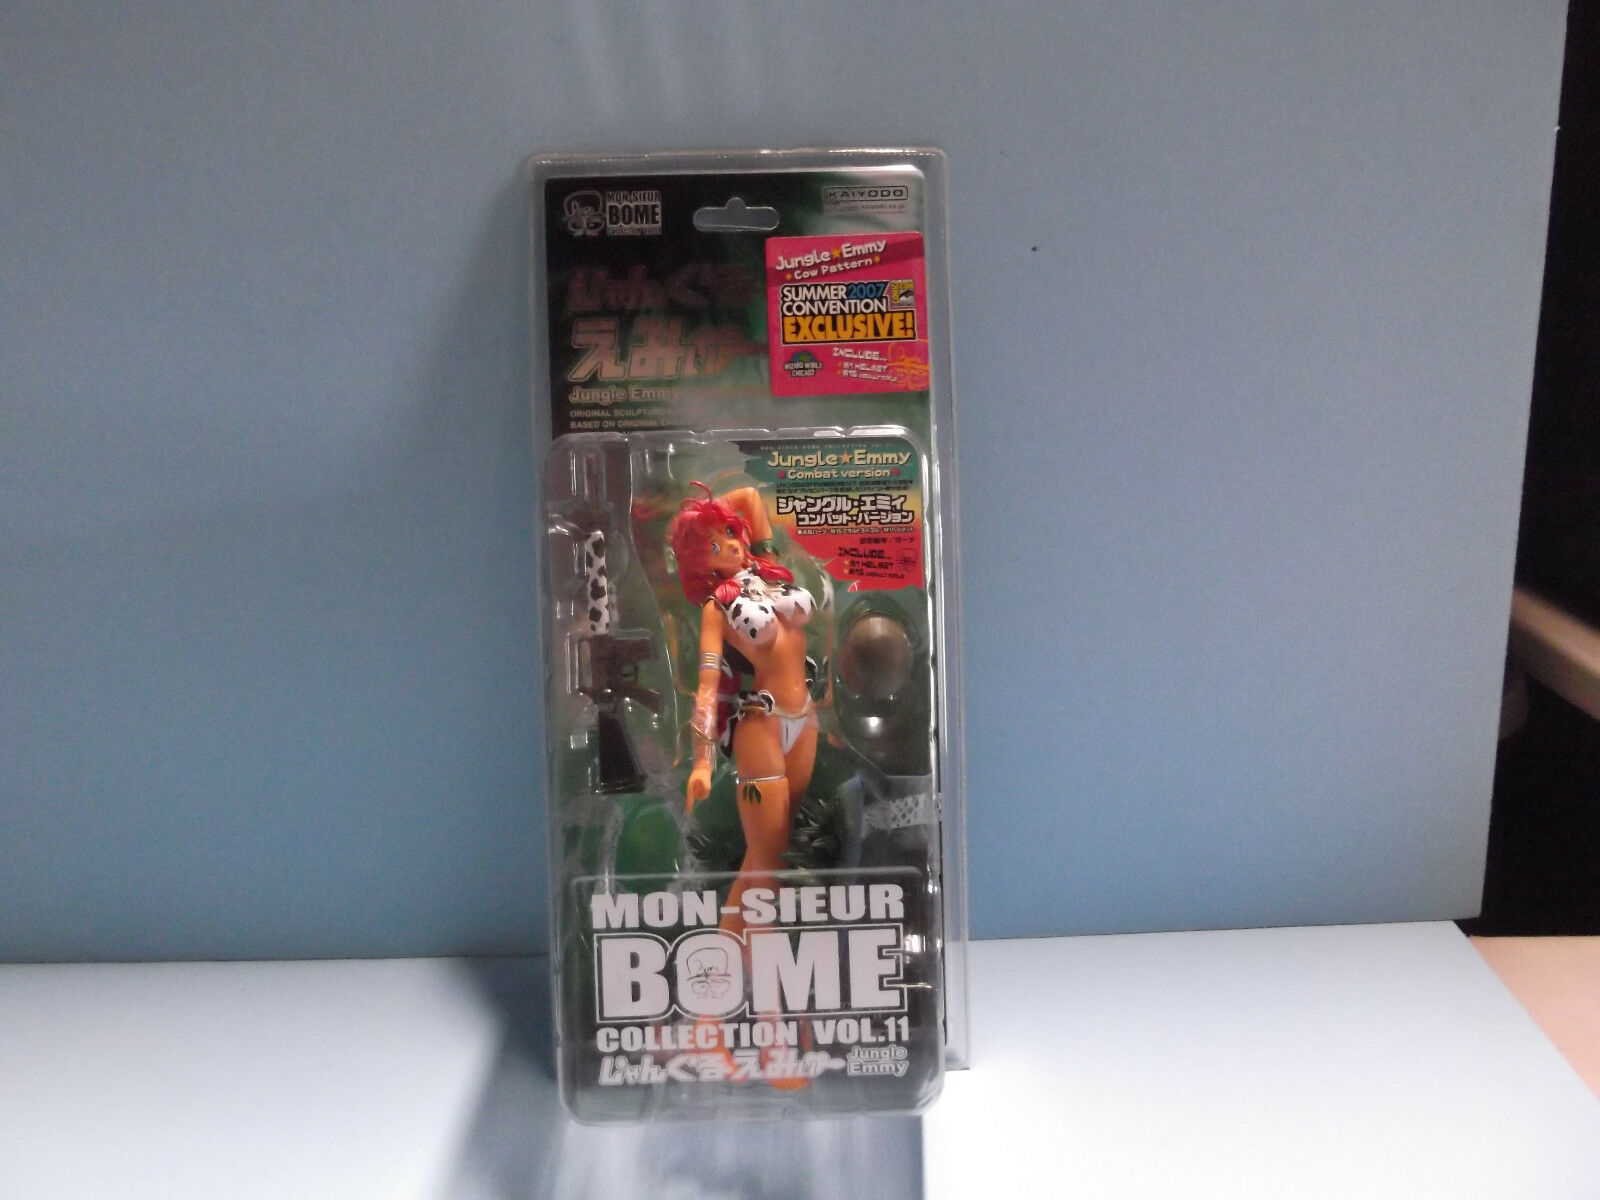 COMIC-CON EXCLUSIVE MON-SIEUR BOME JUNGLE EMMY Cow Pattern 8 in Hot  Anime